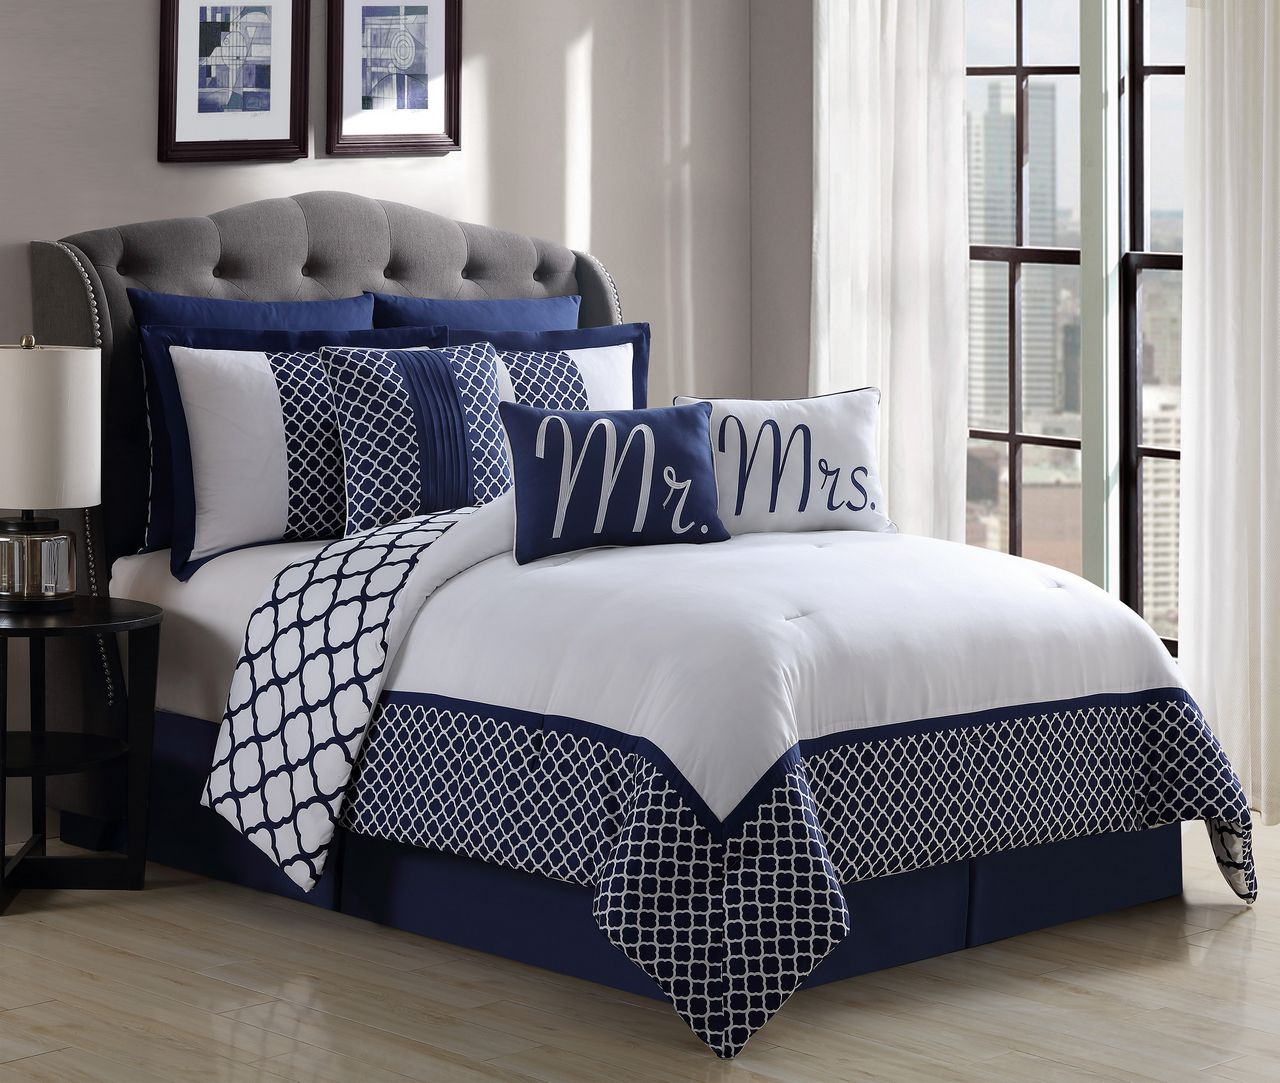 9 Piece Mr  and Mrs  Navy White Reversible Comforter Set Cal King. 9 Piece Mr  and Mrs  Navy White Reversible Comforter Set